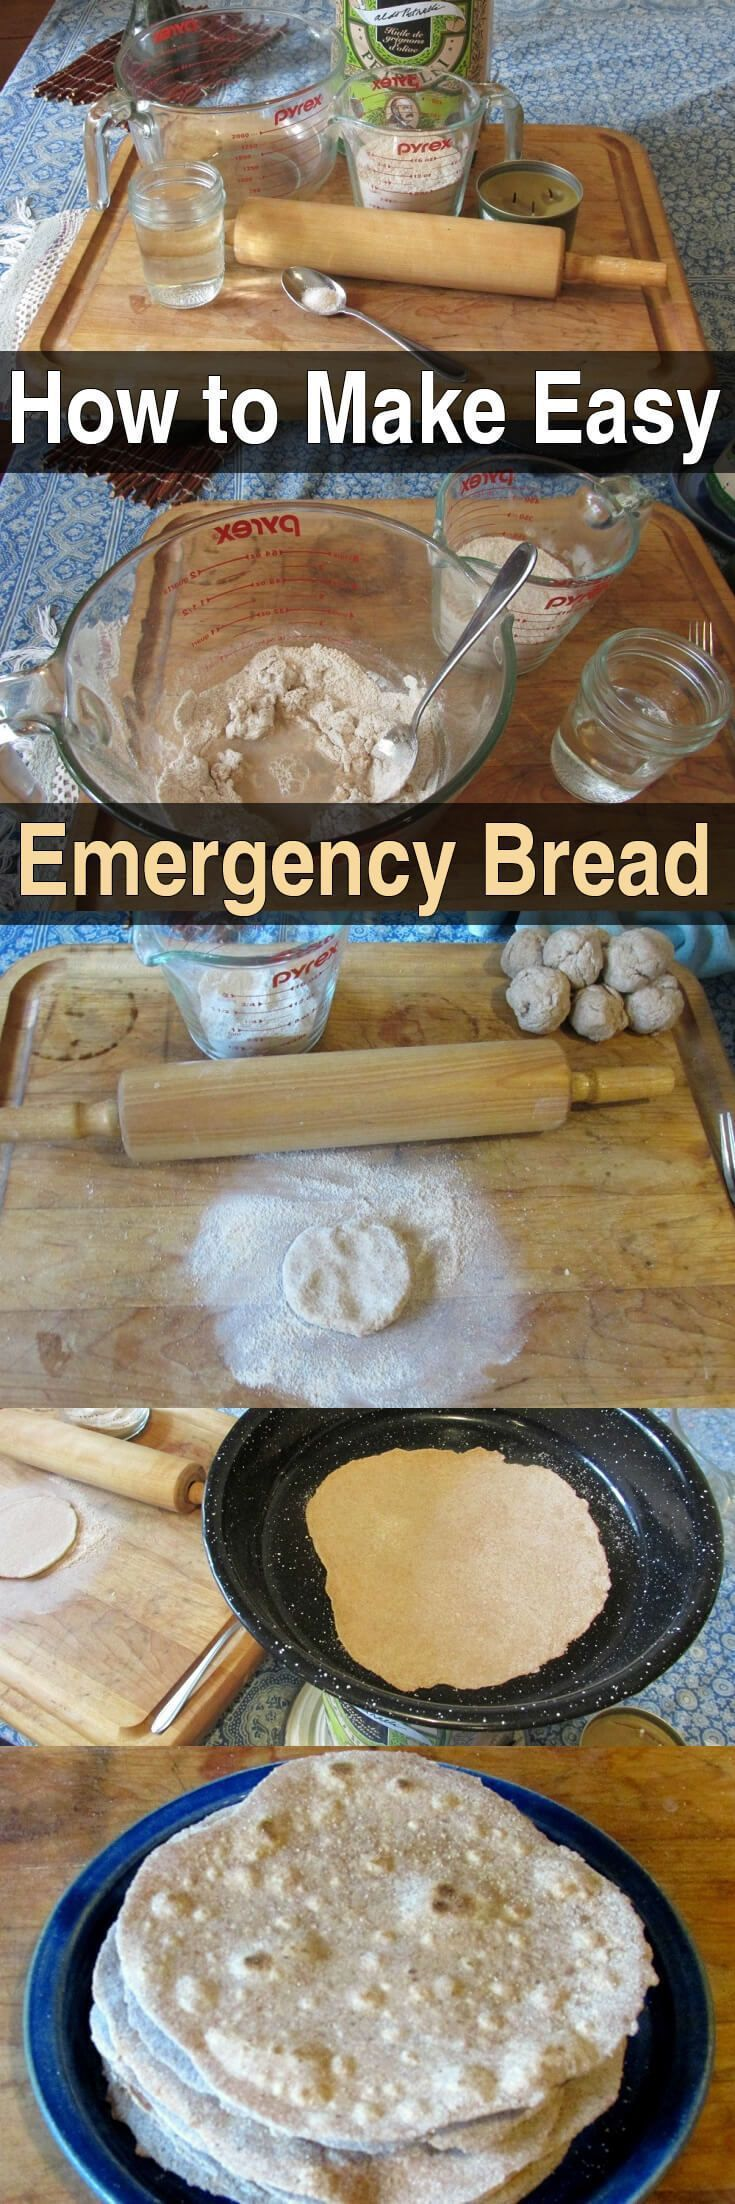 This emergency bread is easy to make, effective, and contains very few ingredients. You can make as much as you need for a single day, or for a few days. #EmergencyBread #MakingFood #Urbansurvivalsite